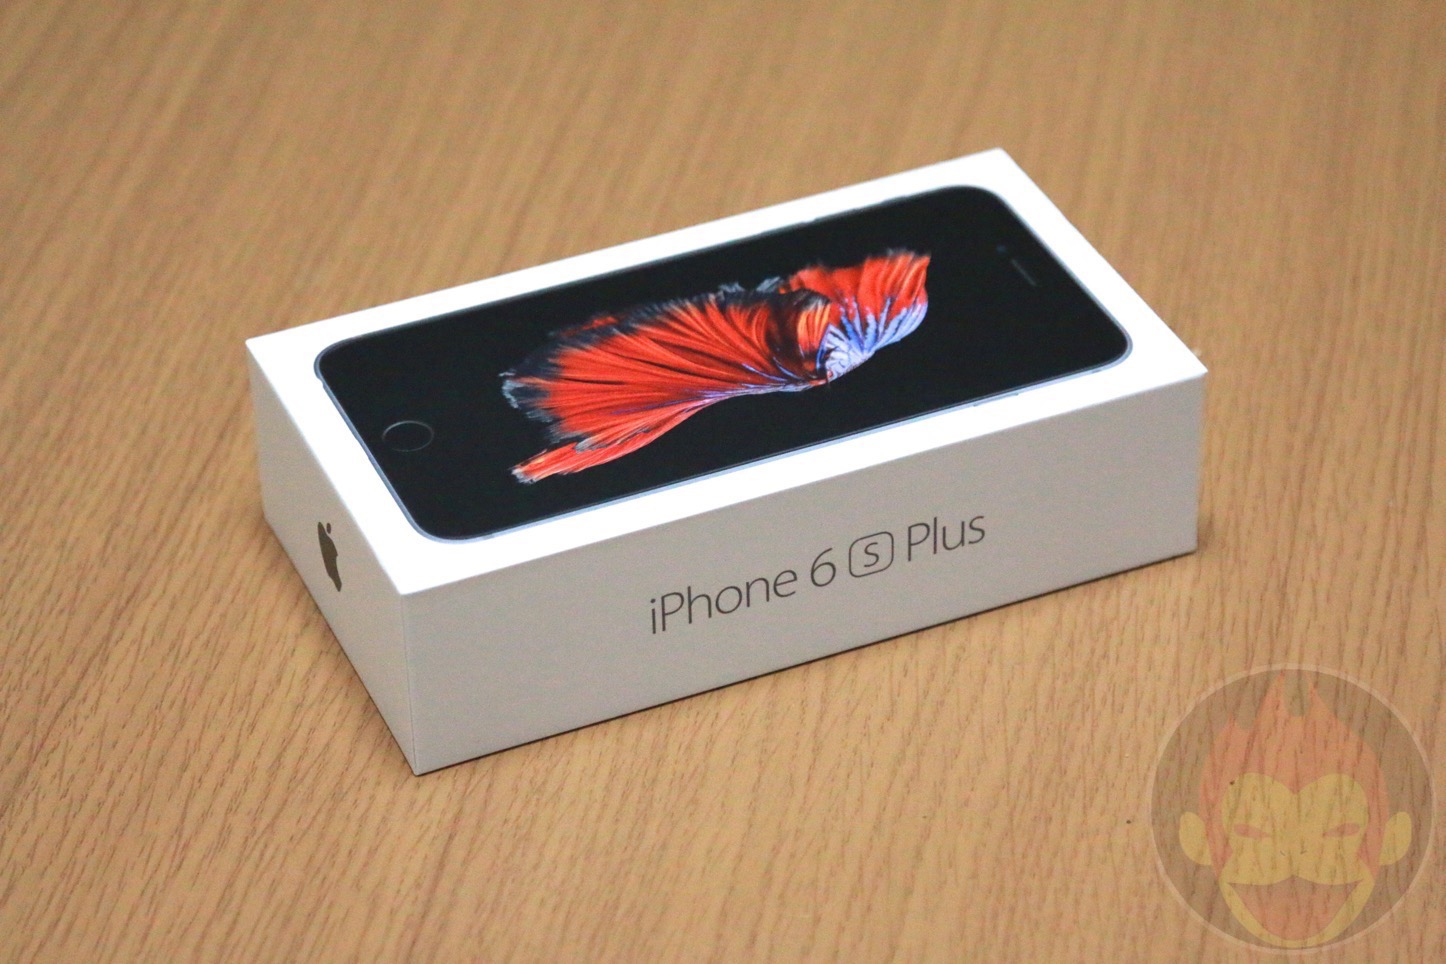 iPhone-6s-Plus-Photo-Review-01.jpg